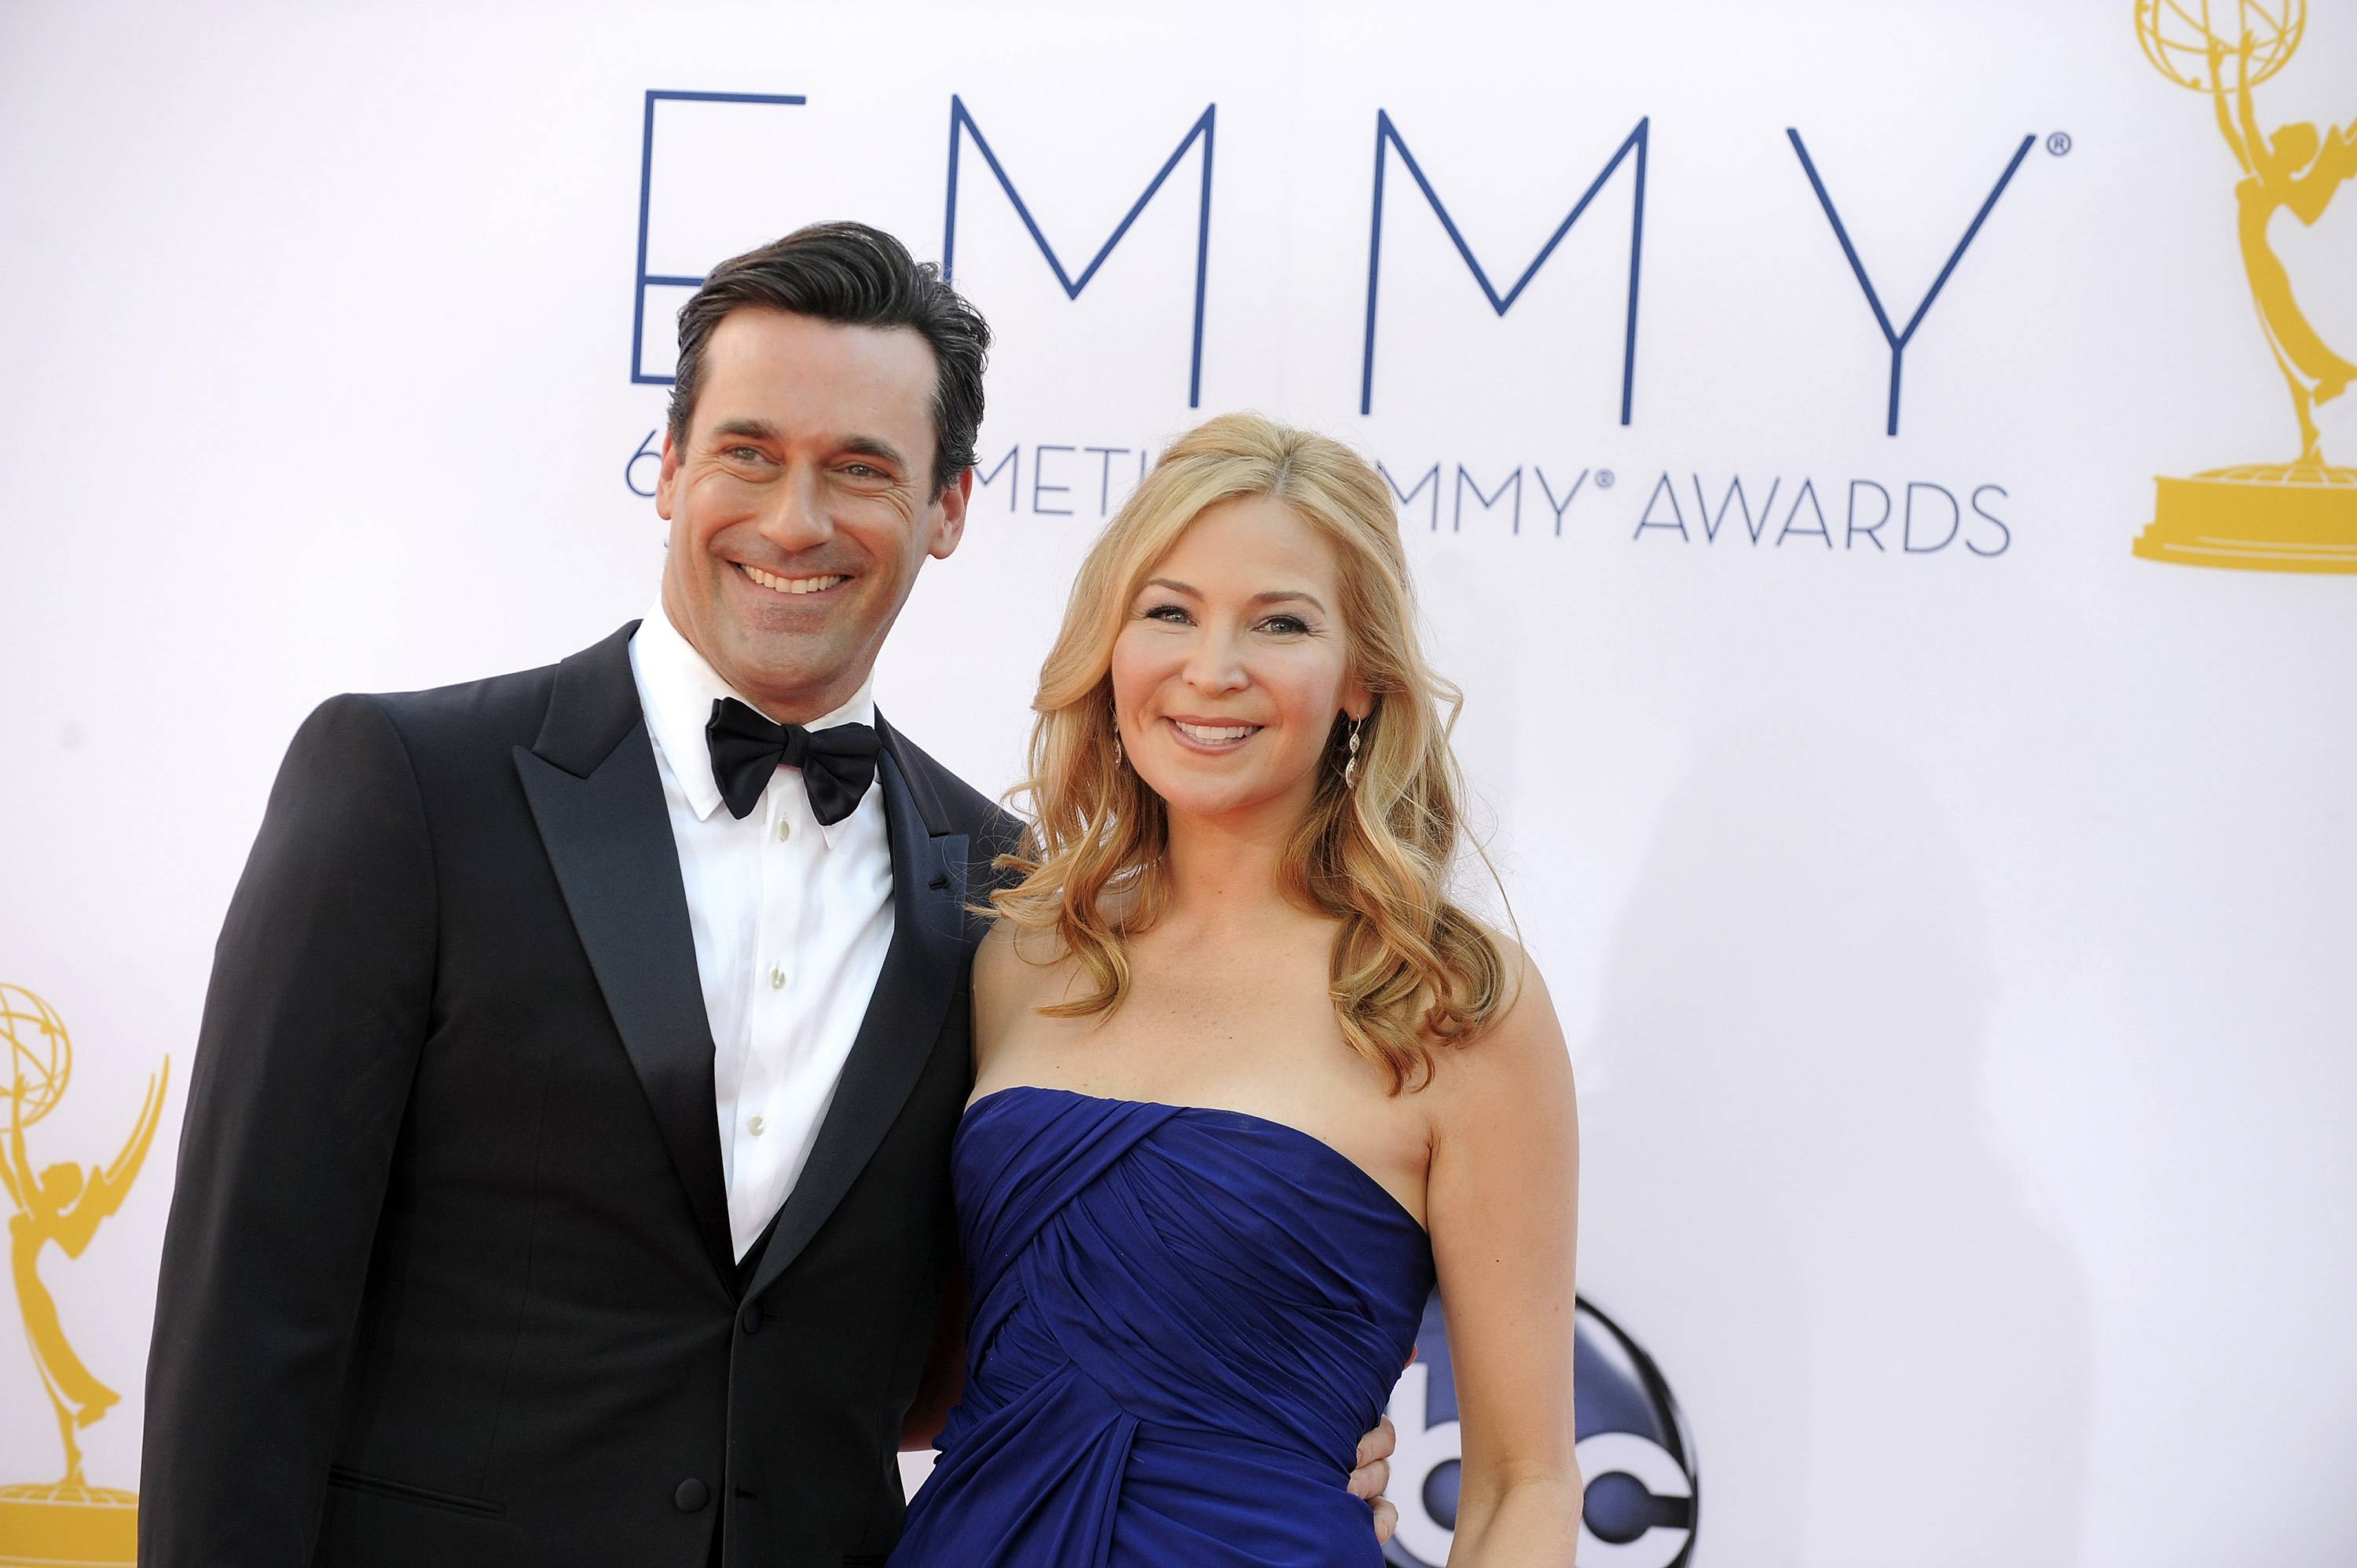 """Mad Men"" actor Jon Hamm along with longtime love actress Jennifer Westfeldt arrive for Emmy night. Hamm and his award-winning show could break some Emmy records."